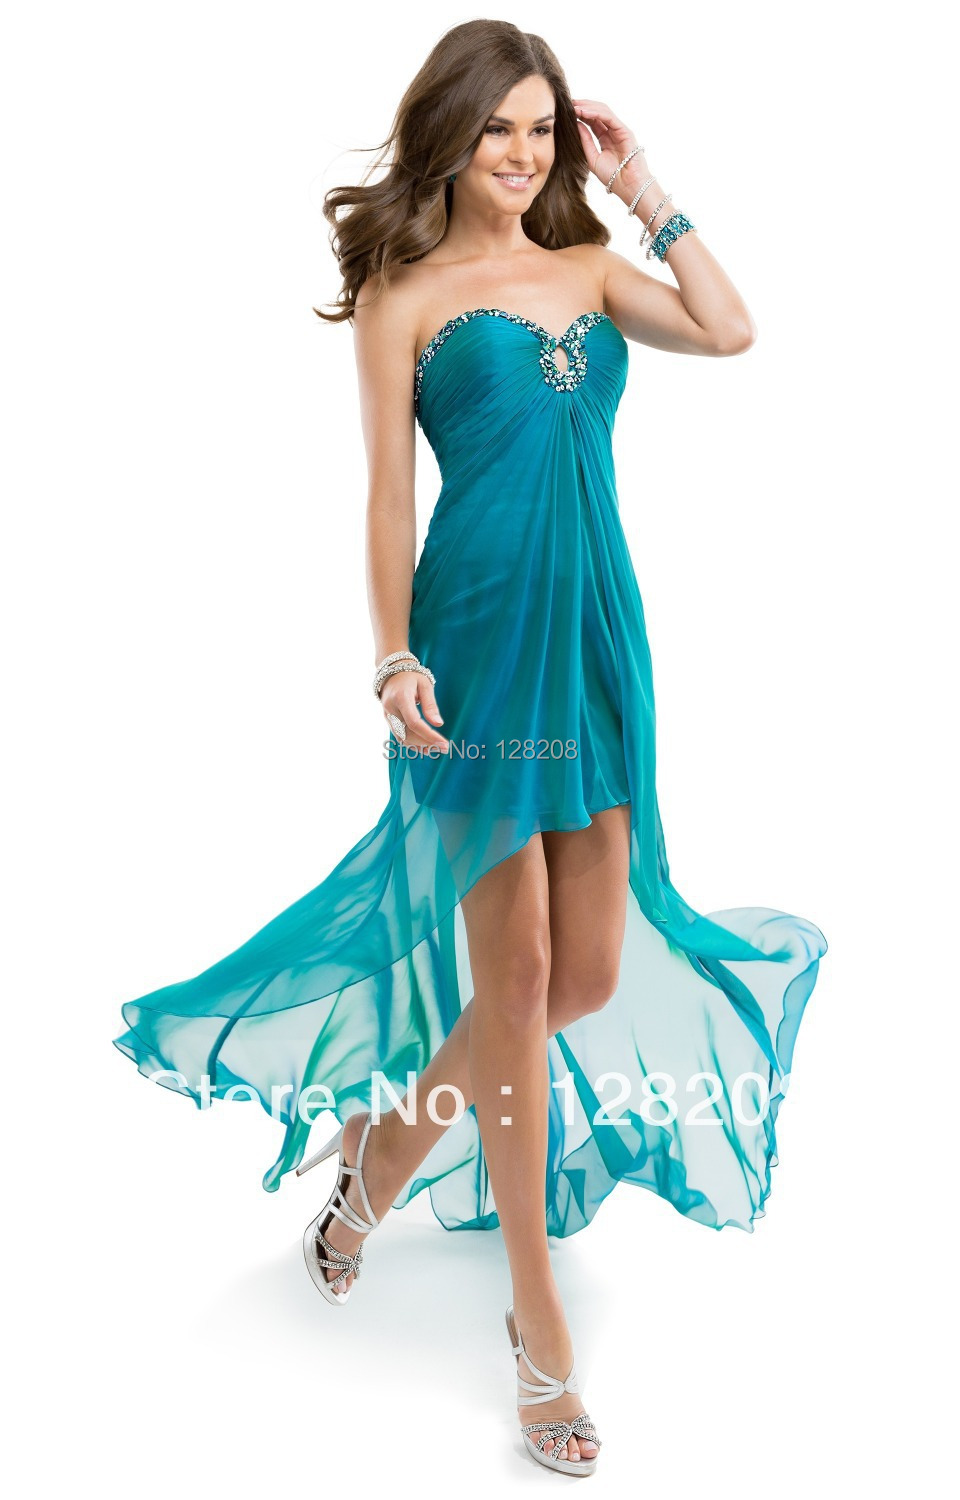 Party Dresses for Beach | Dress images